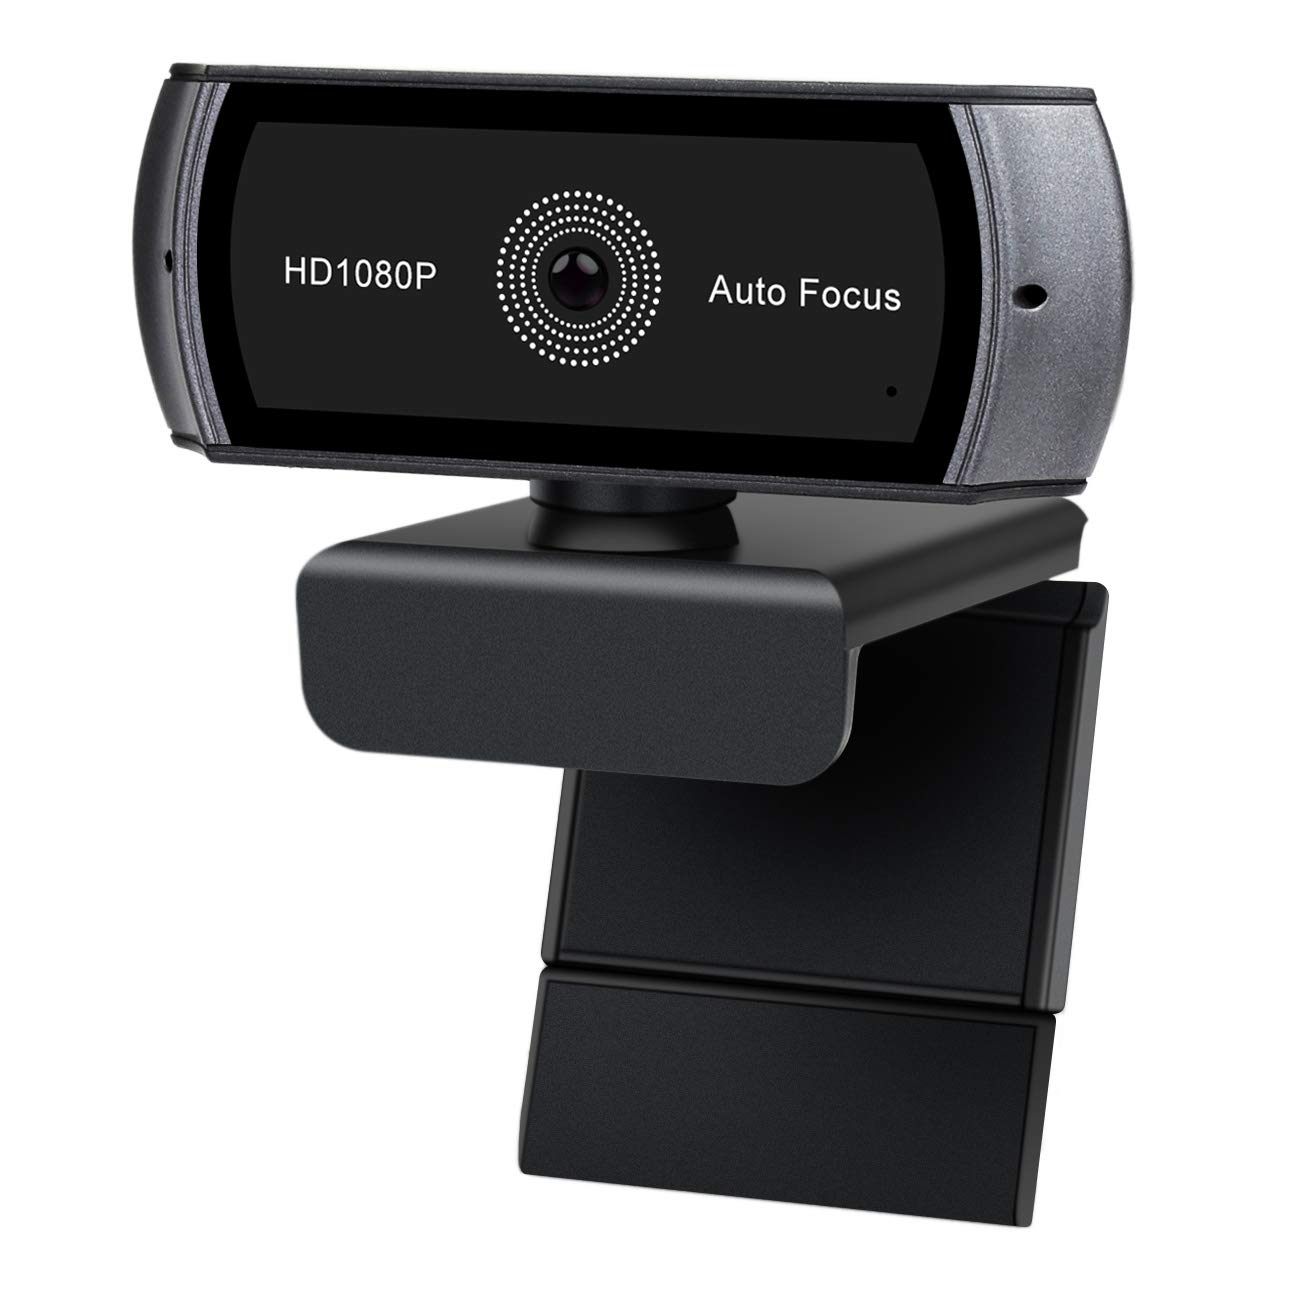 KOONEW Webcam Full HD 1080p, USB Webcam con Microfono Integrato e autofocus, grandangolo Live Streaming Telecamera per PC, Laptop, Desktop, Widescreen Video Calling & Registrazione KOOCAT